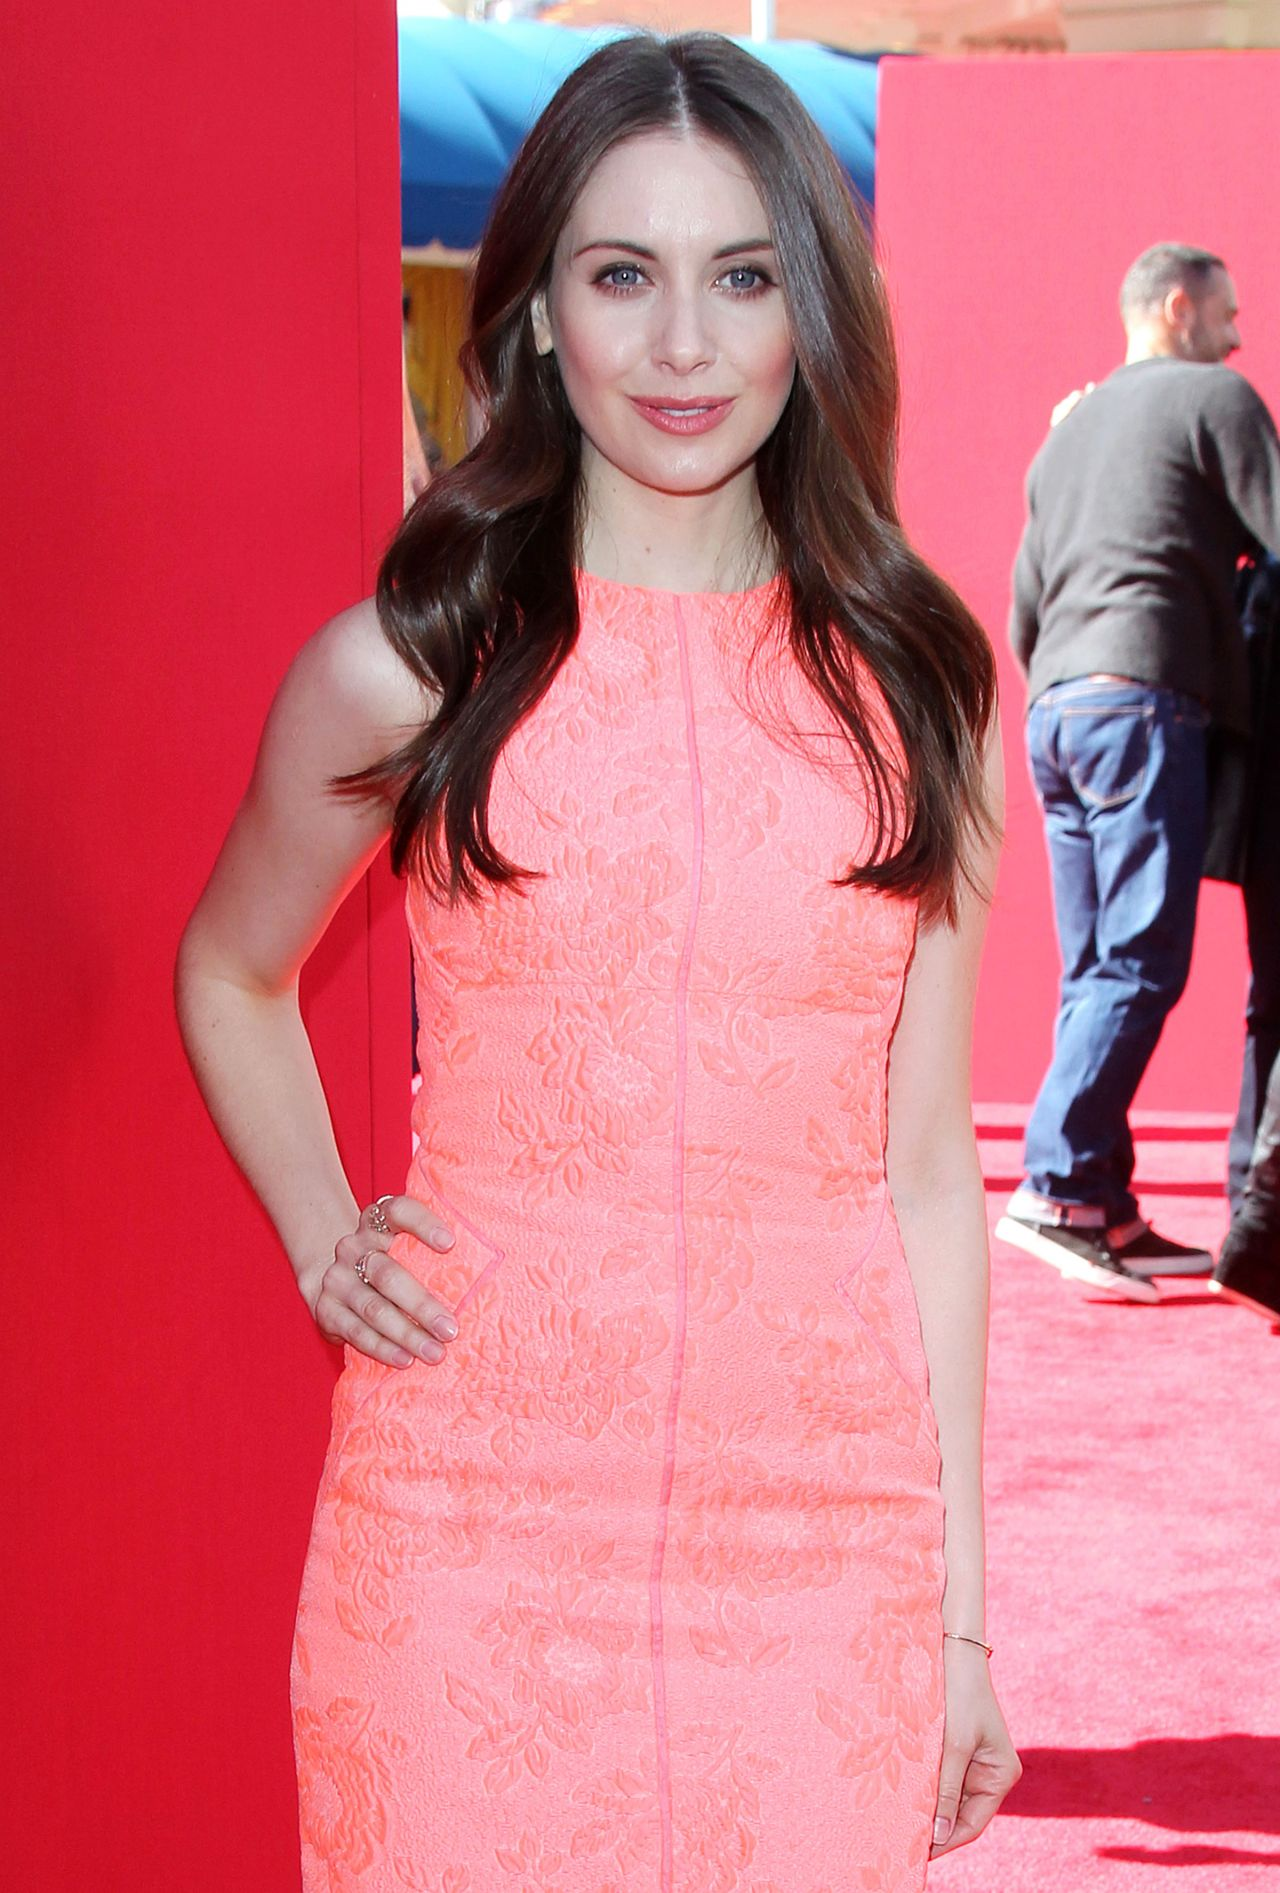 Alison Brie The Lego Movie Premiere In Los Angeles